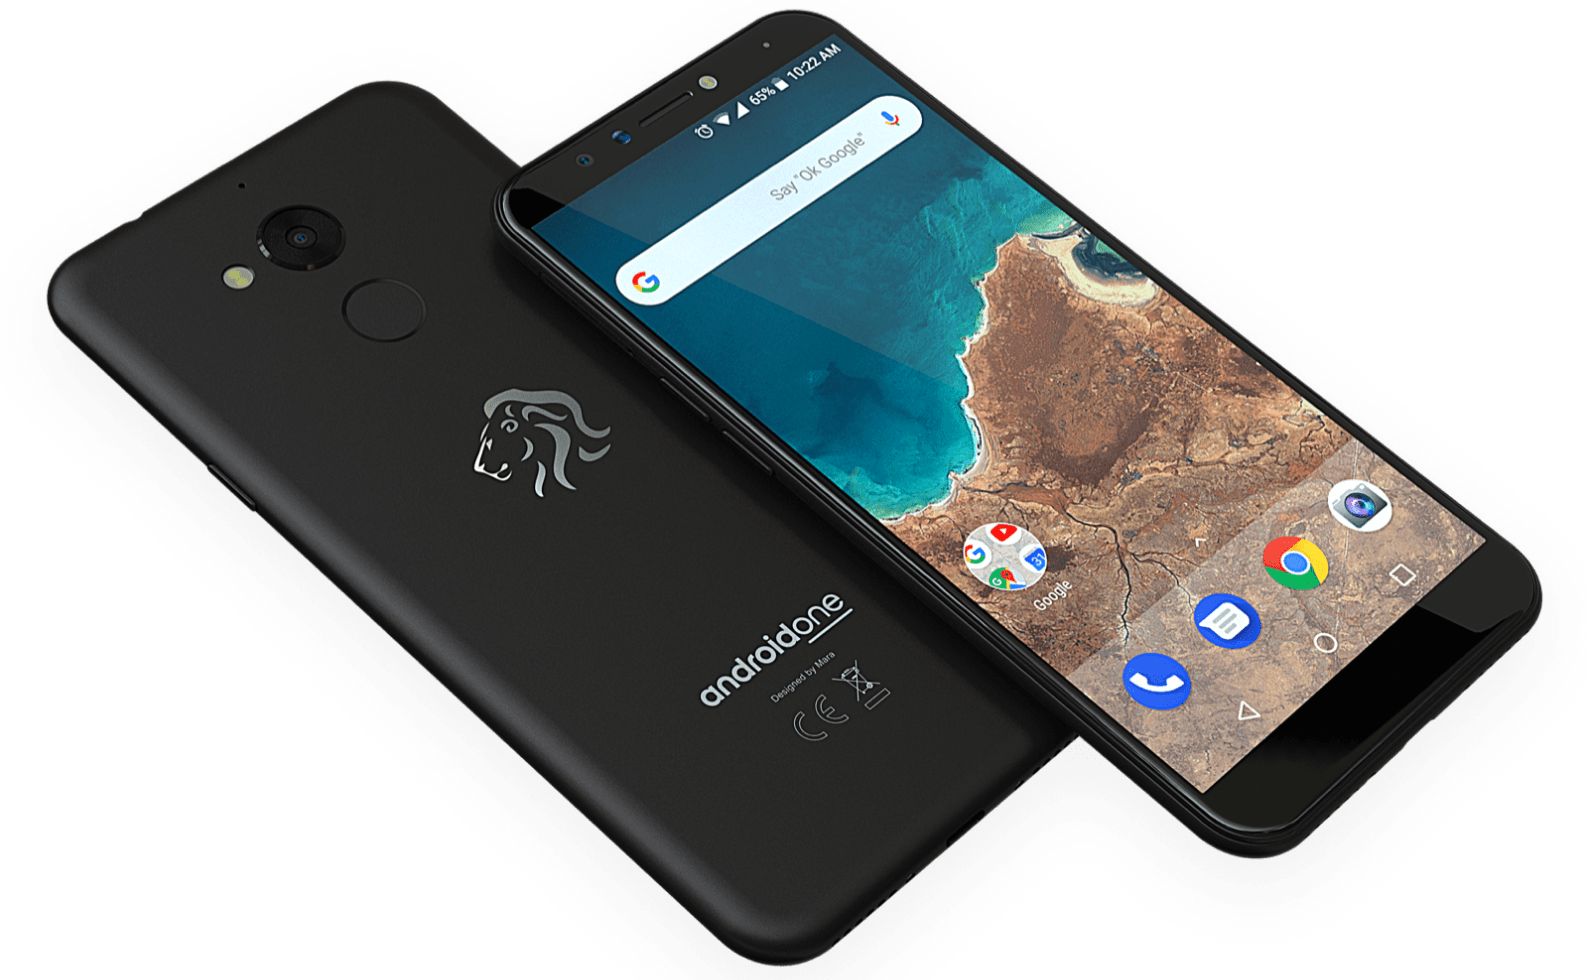 Mara Z High Quality, Affordable Smartphones from Africa